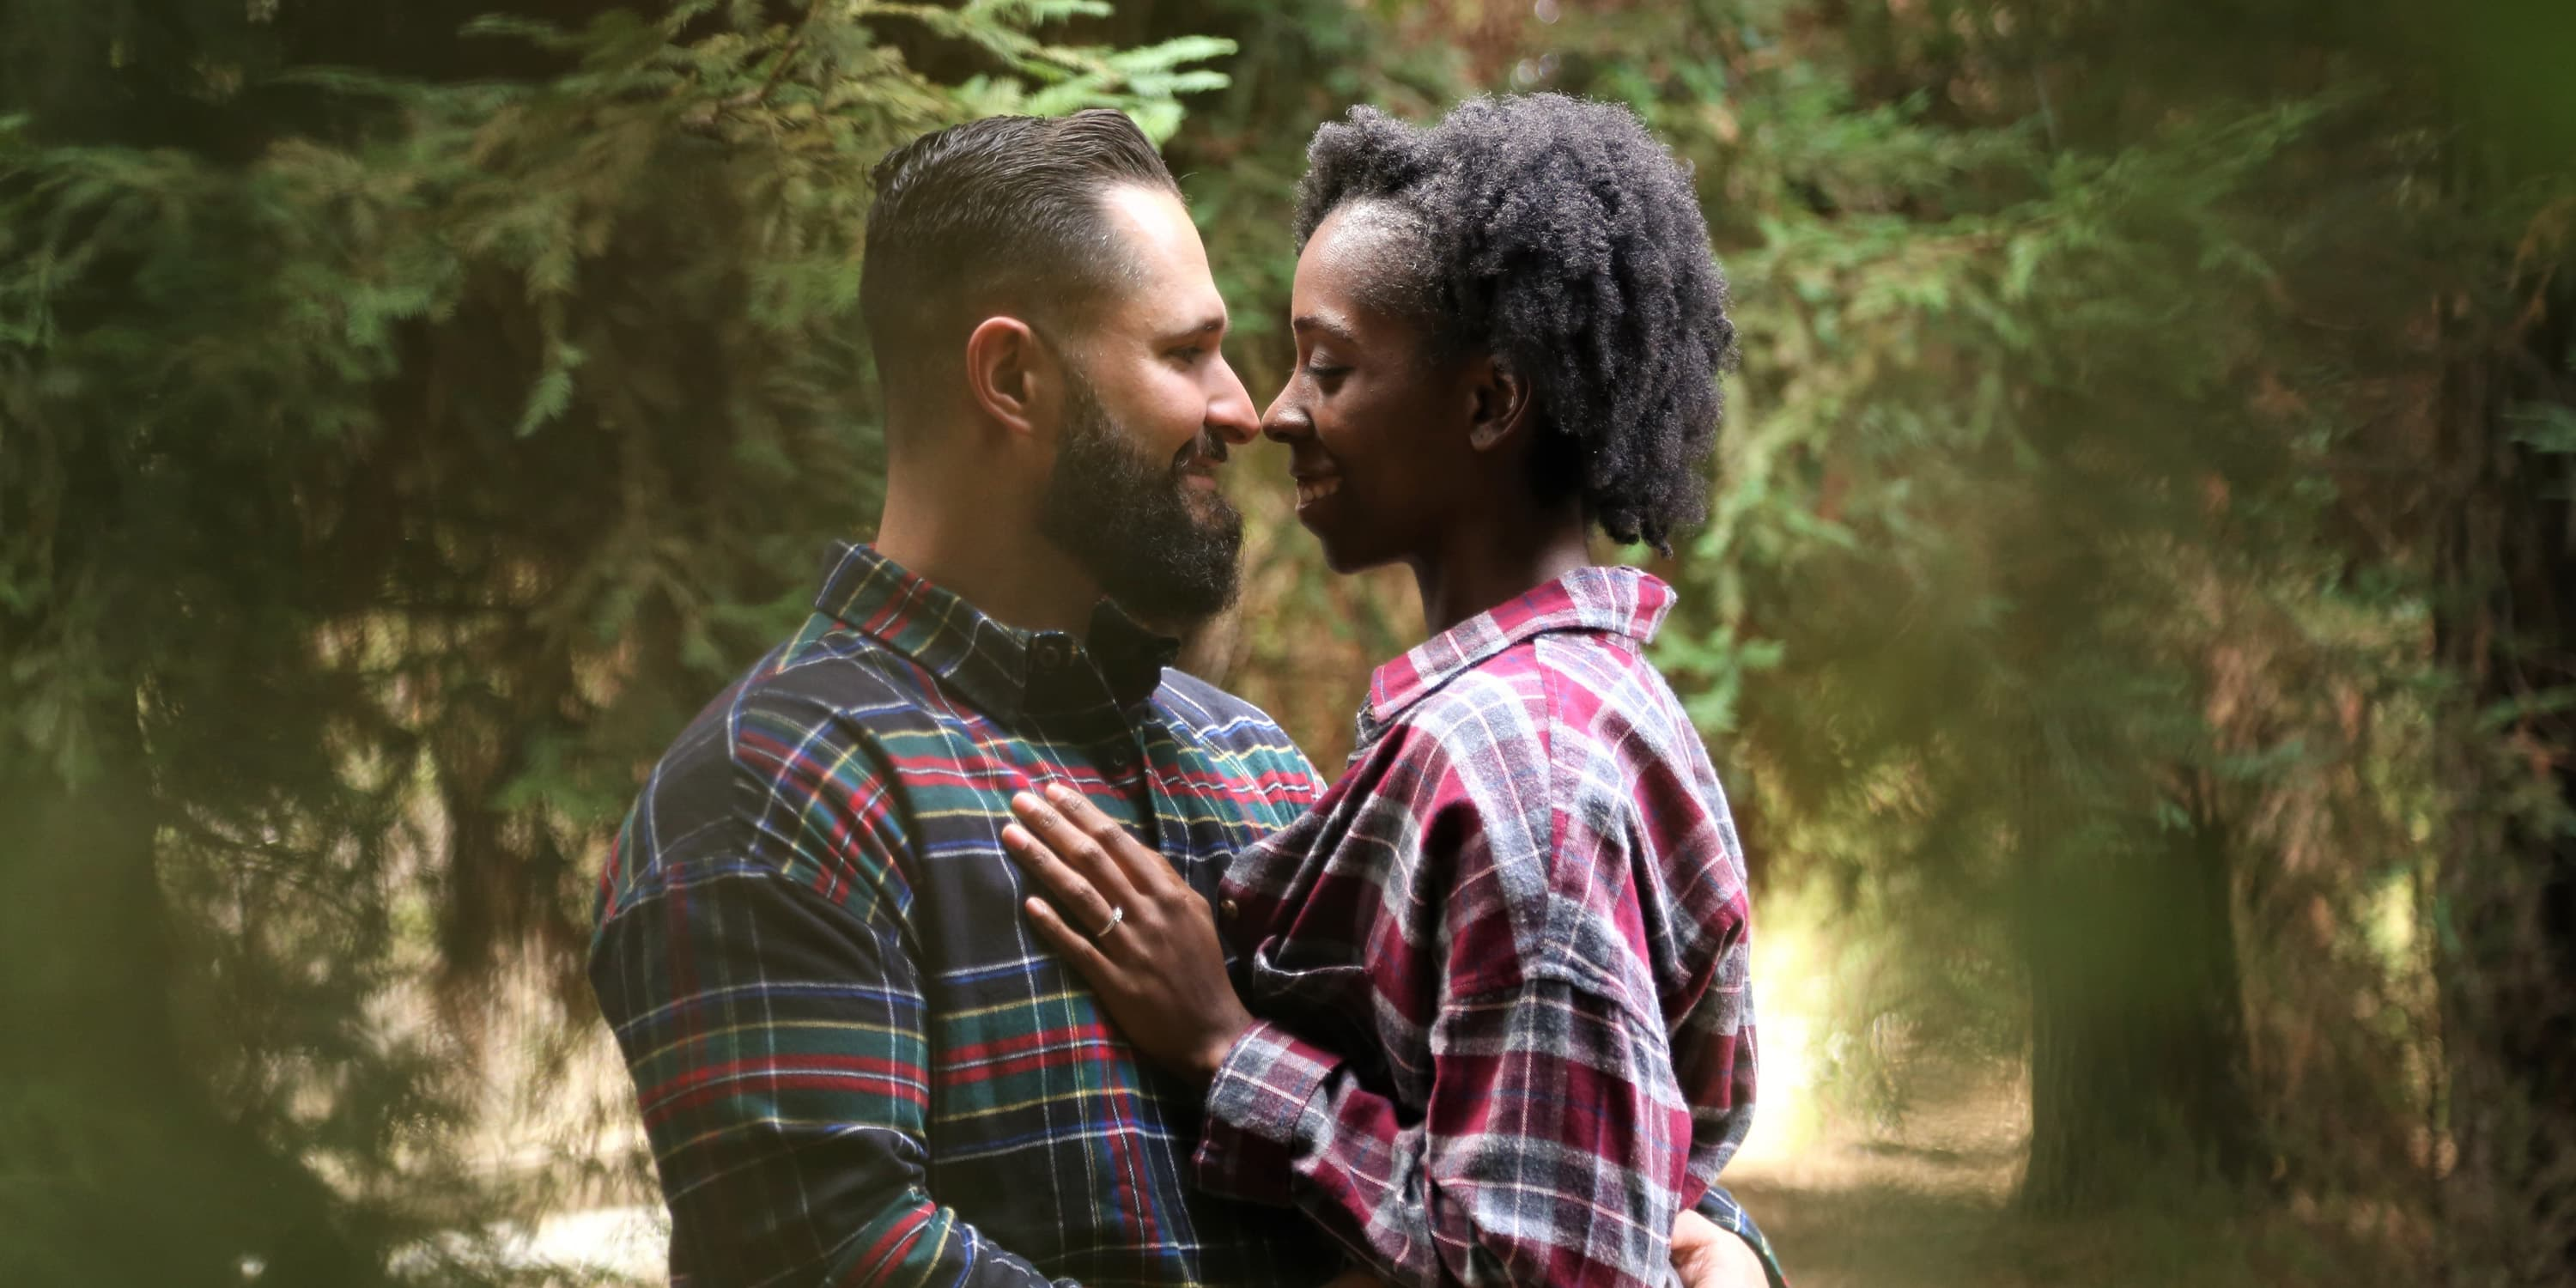 Young couple standing in forest hugging and smiling at each other